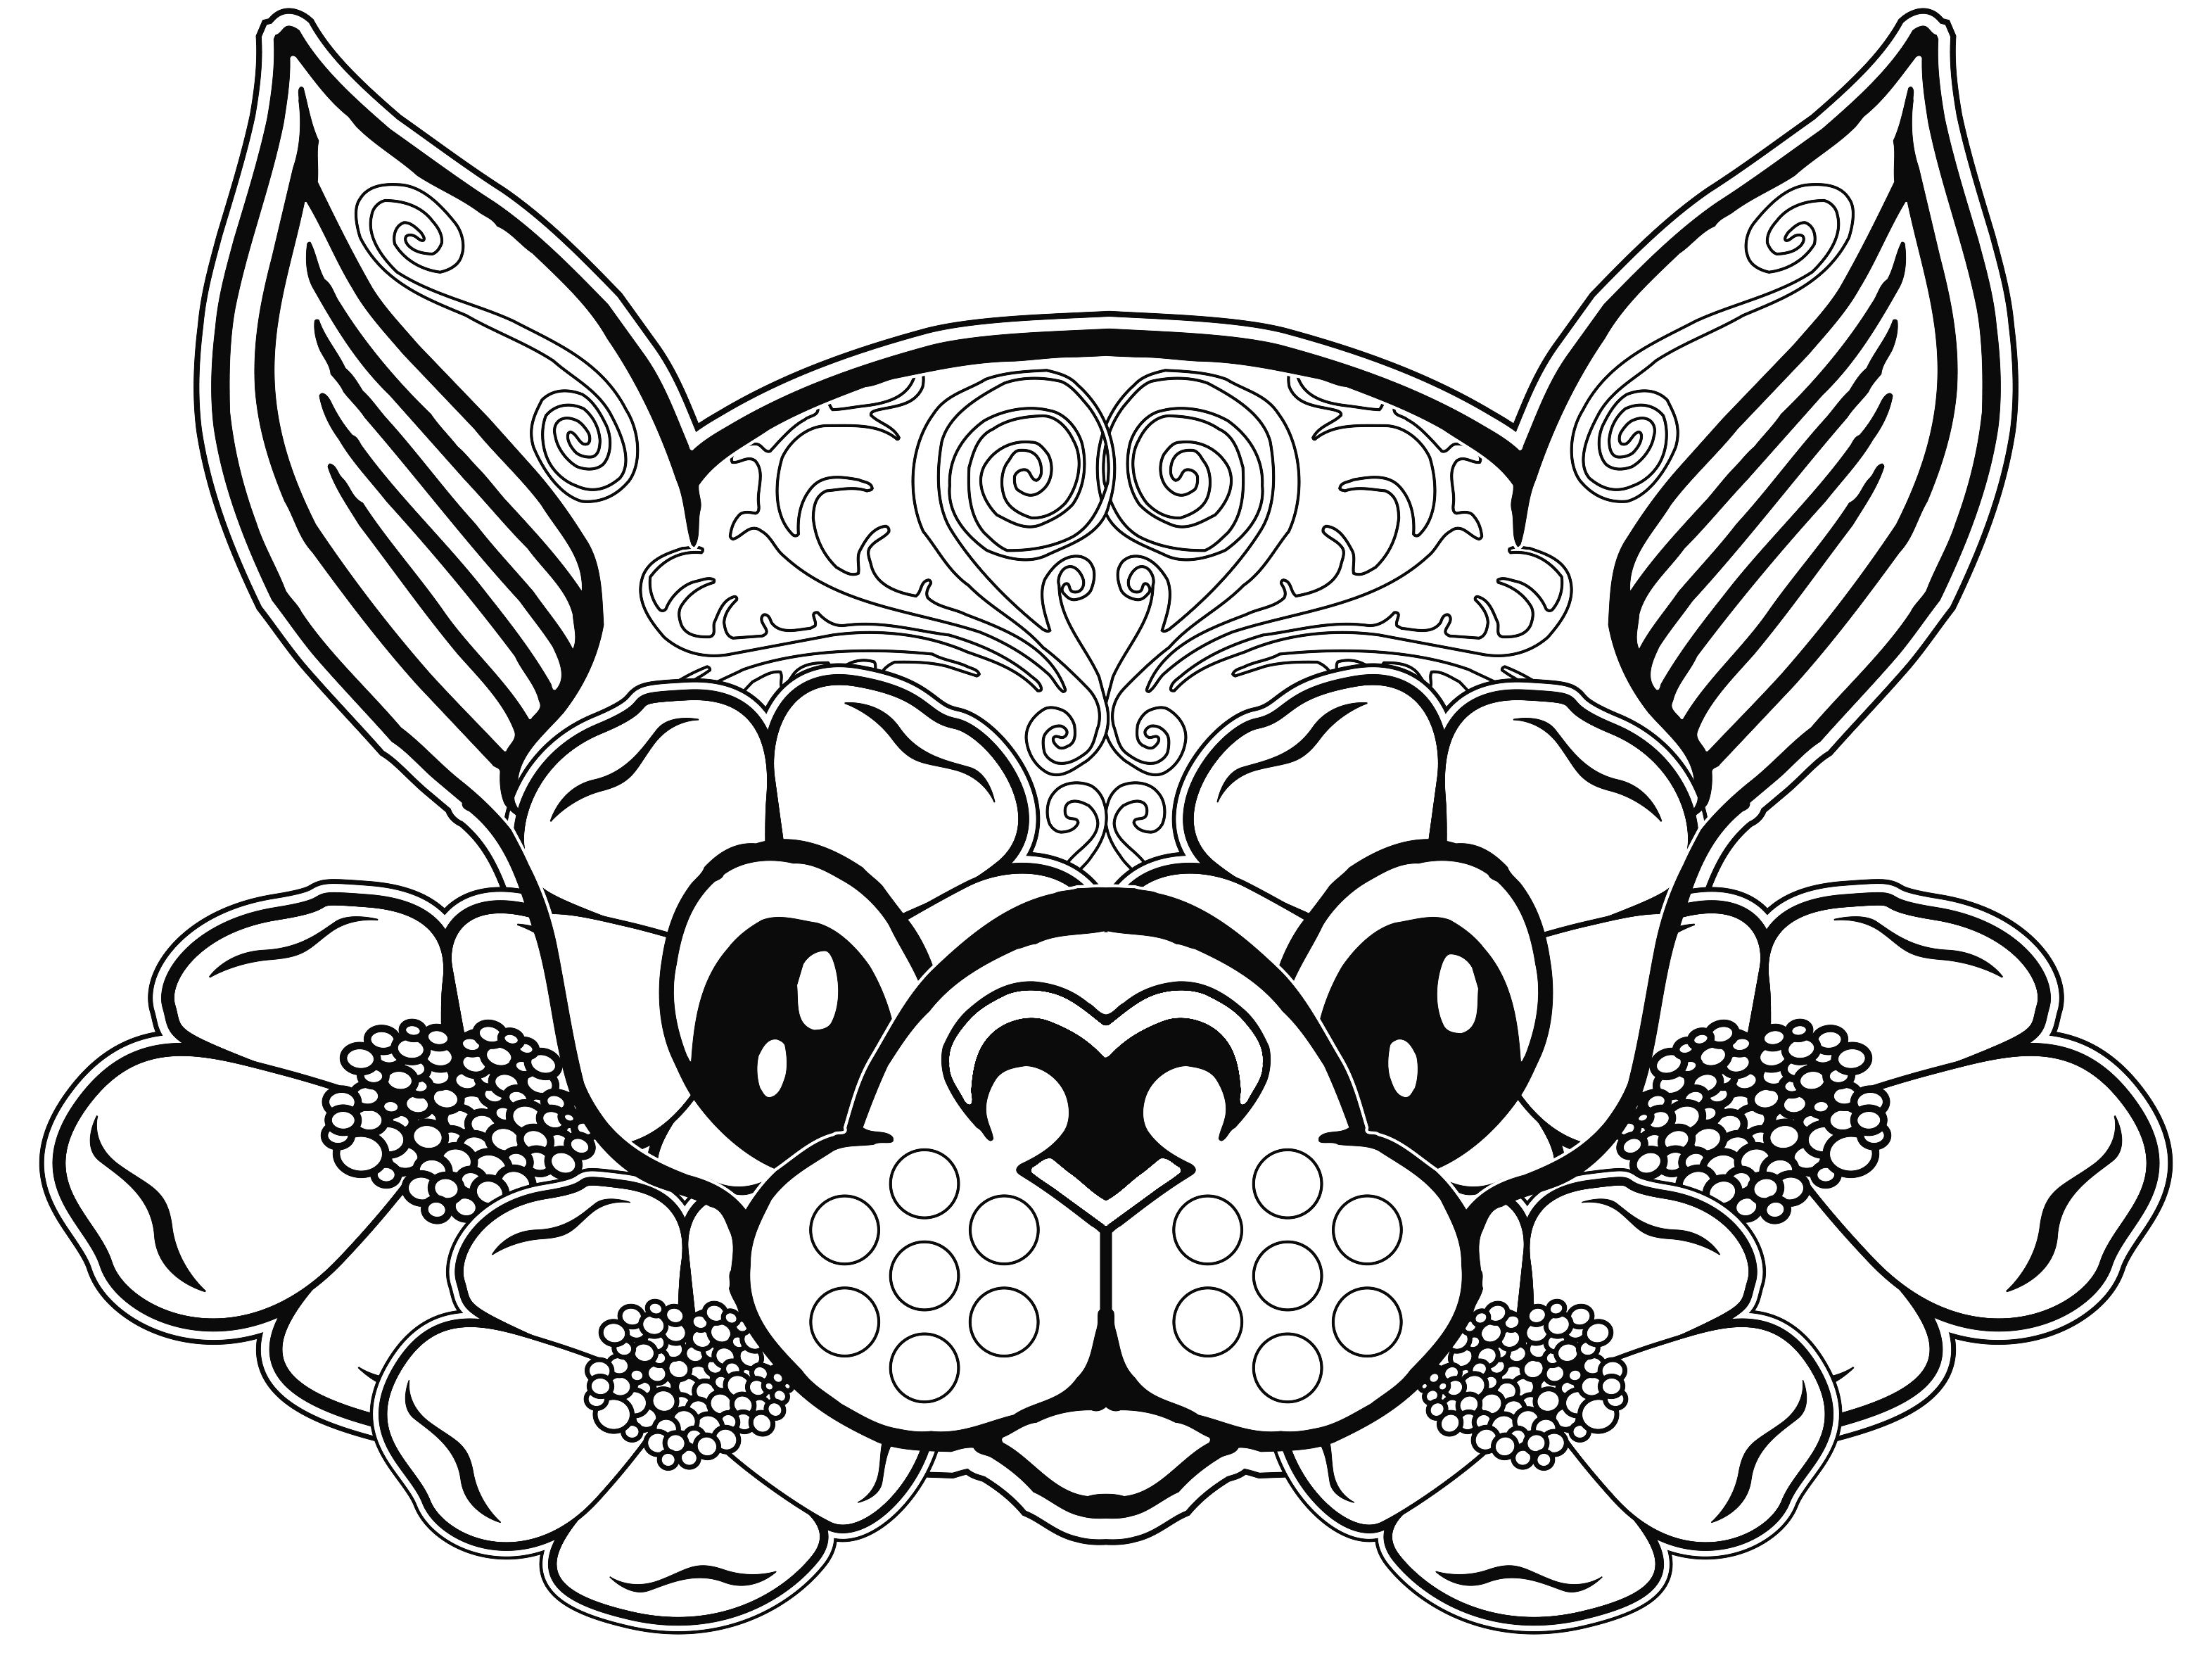 Dog Coloring Page Pages Free For Adults Sugar Skull